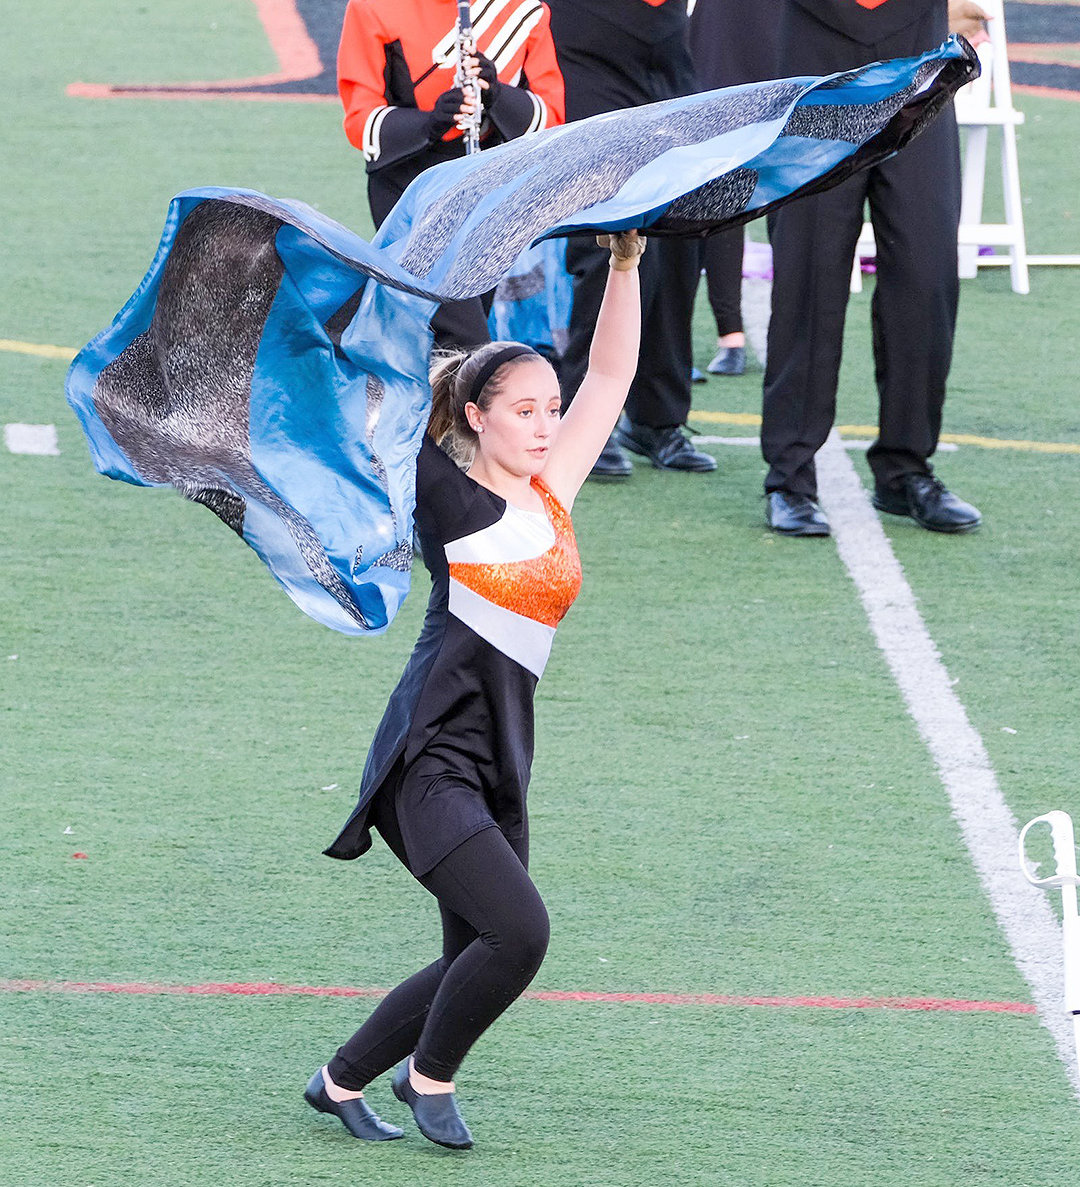 GIVING IT A WHIRL — Color guard member Becky Worth steps into a sequence for the Rome Free Academy marching band during a homecoming program at RFA Stadium on Sept. 27.